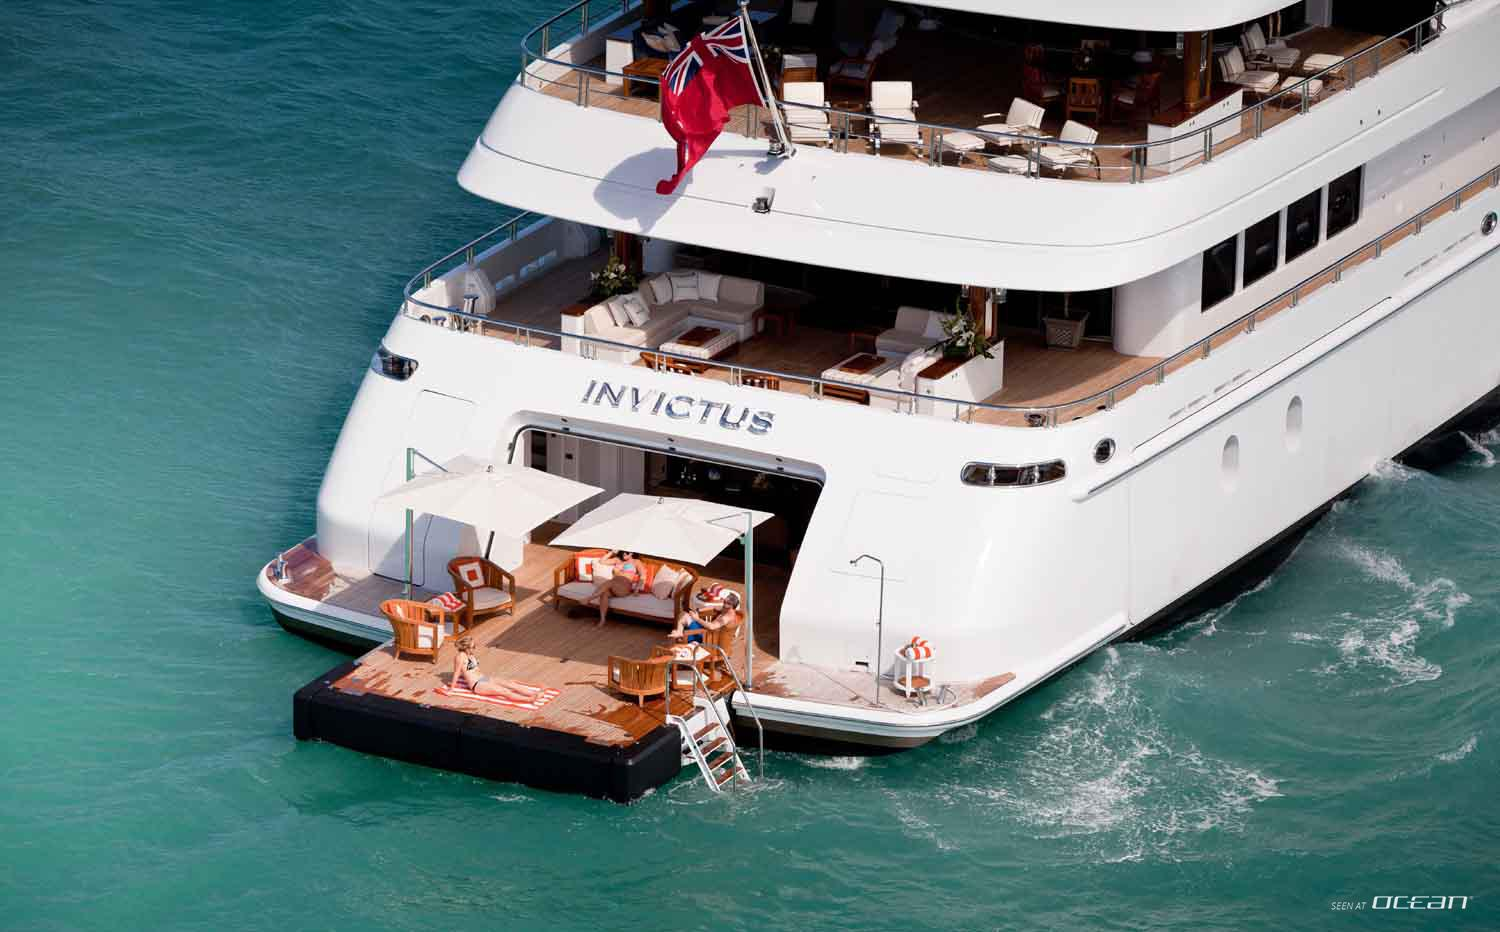 Luxury motor yacht invictus invader 211042 for charter in for Motor yacht charter croatia